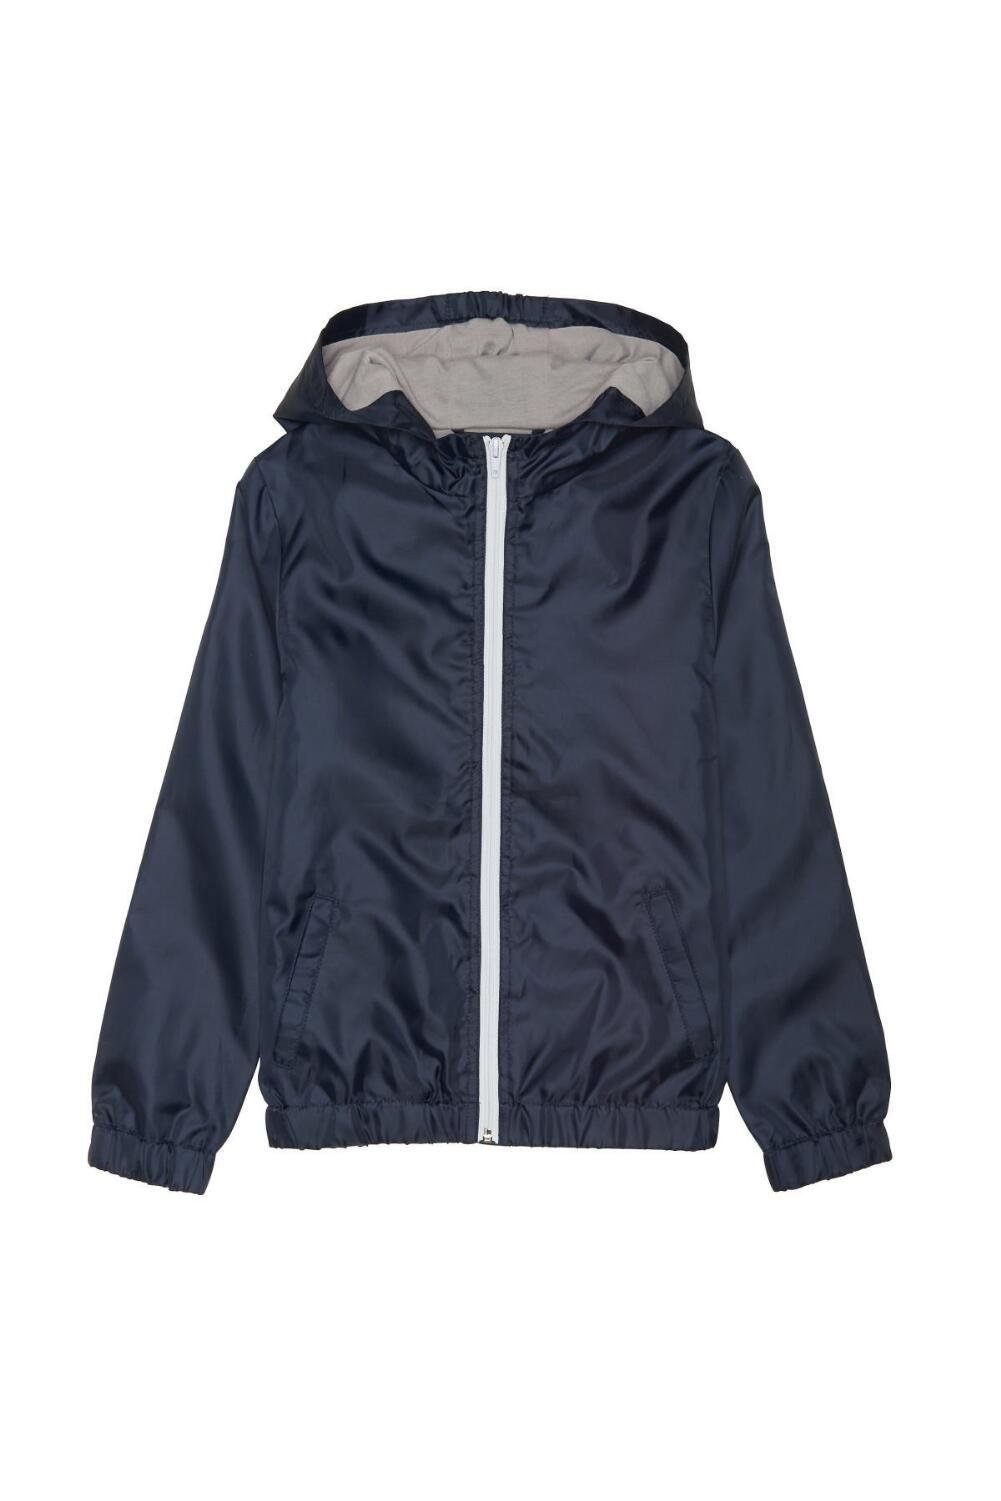 French Toast Big Boys' Windbreaker, Navy, M (8)